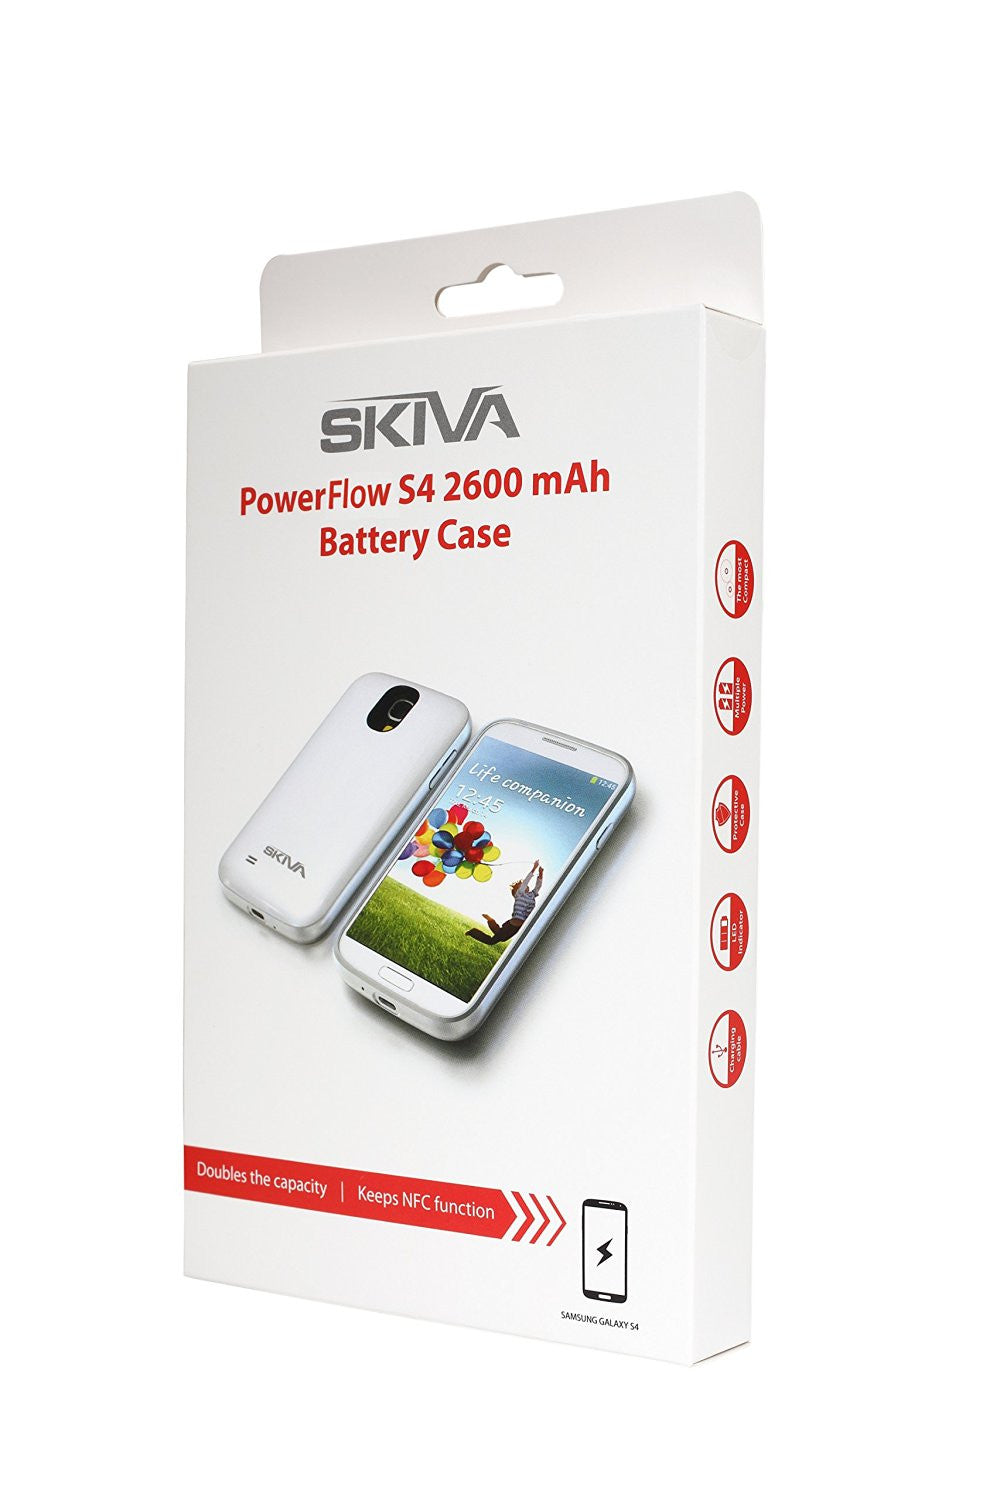 Skiva PowerFlow 2600mAh Samsung Galaxy S4 Protective Rechargeable Battery Case withNFC//Google Wallet 1 Year Warranty Model:AP108